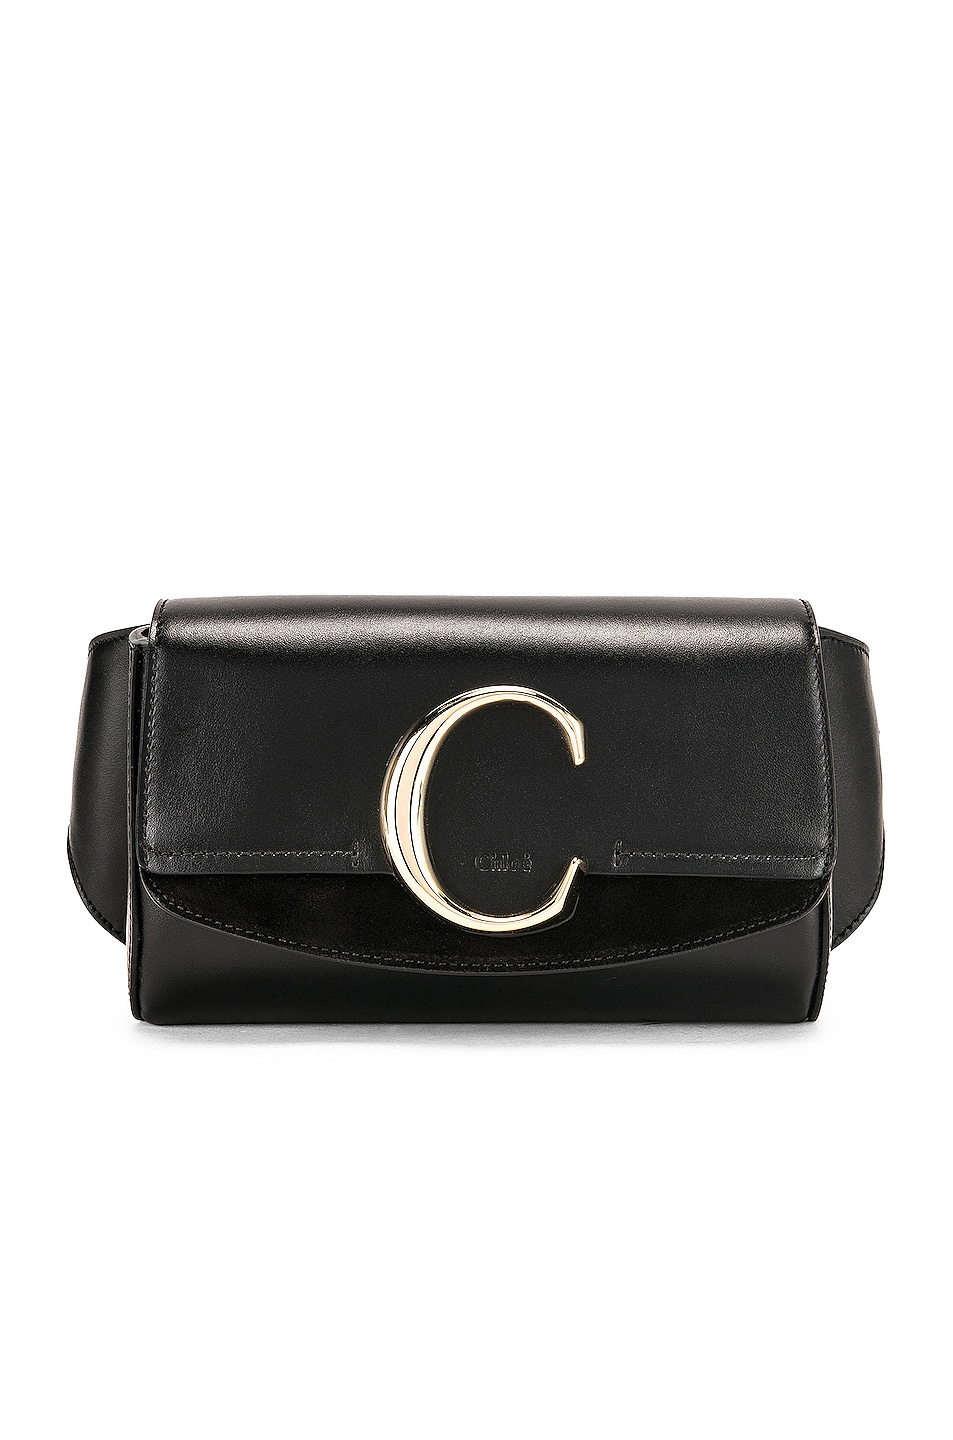 17eda885848 ChloÉ Chloe C Belt Bag In Black. | ModeSens